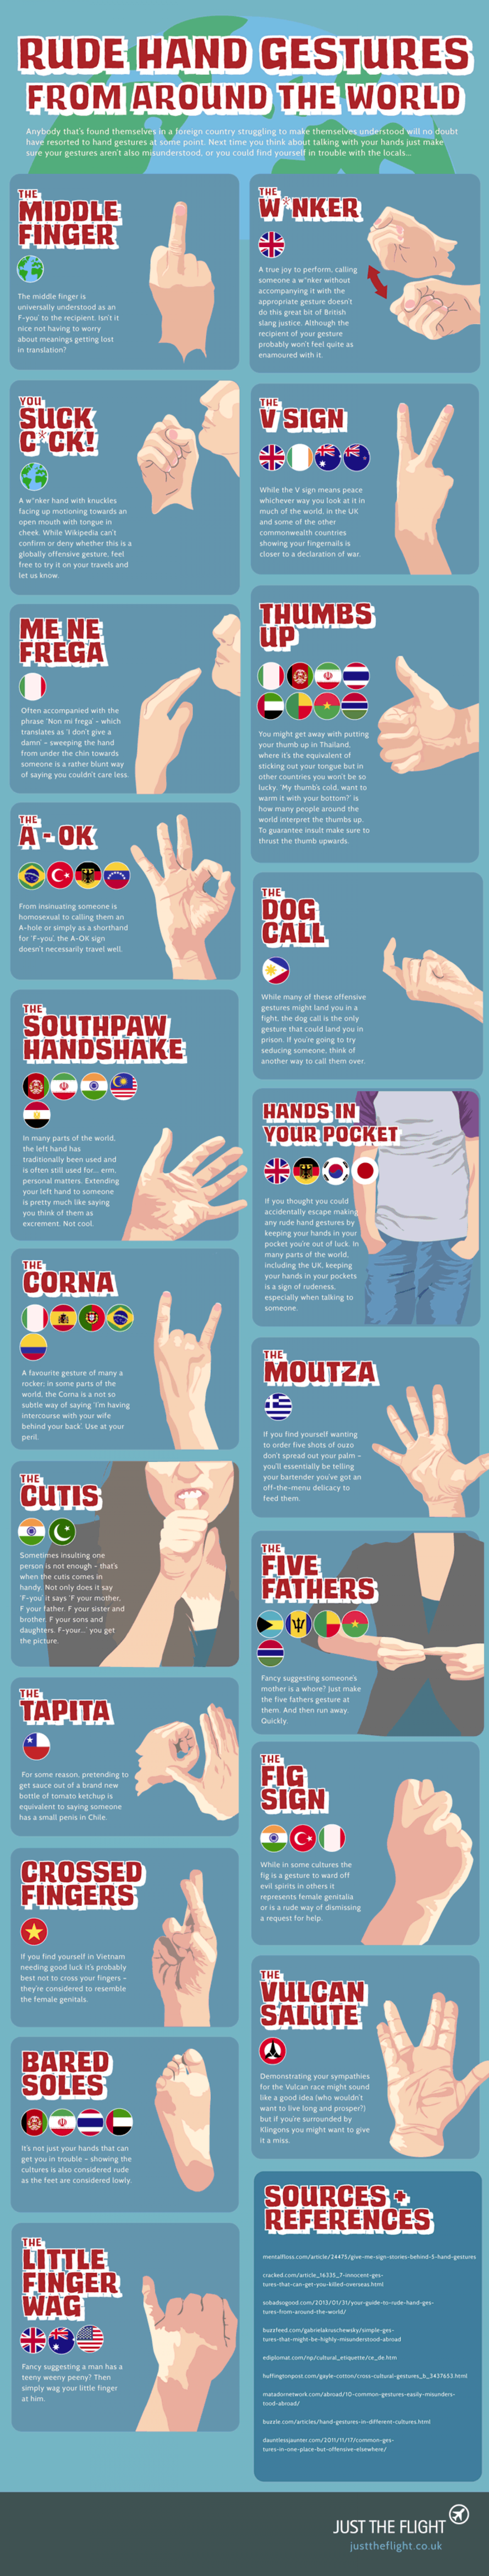 Rude Hand Gestures From Around The World Visual